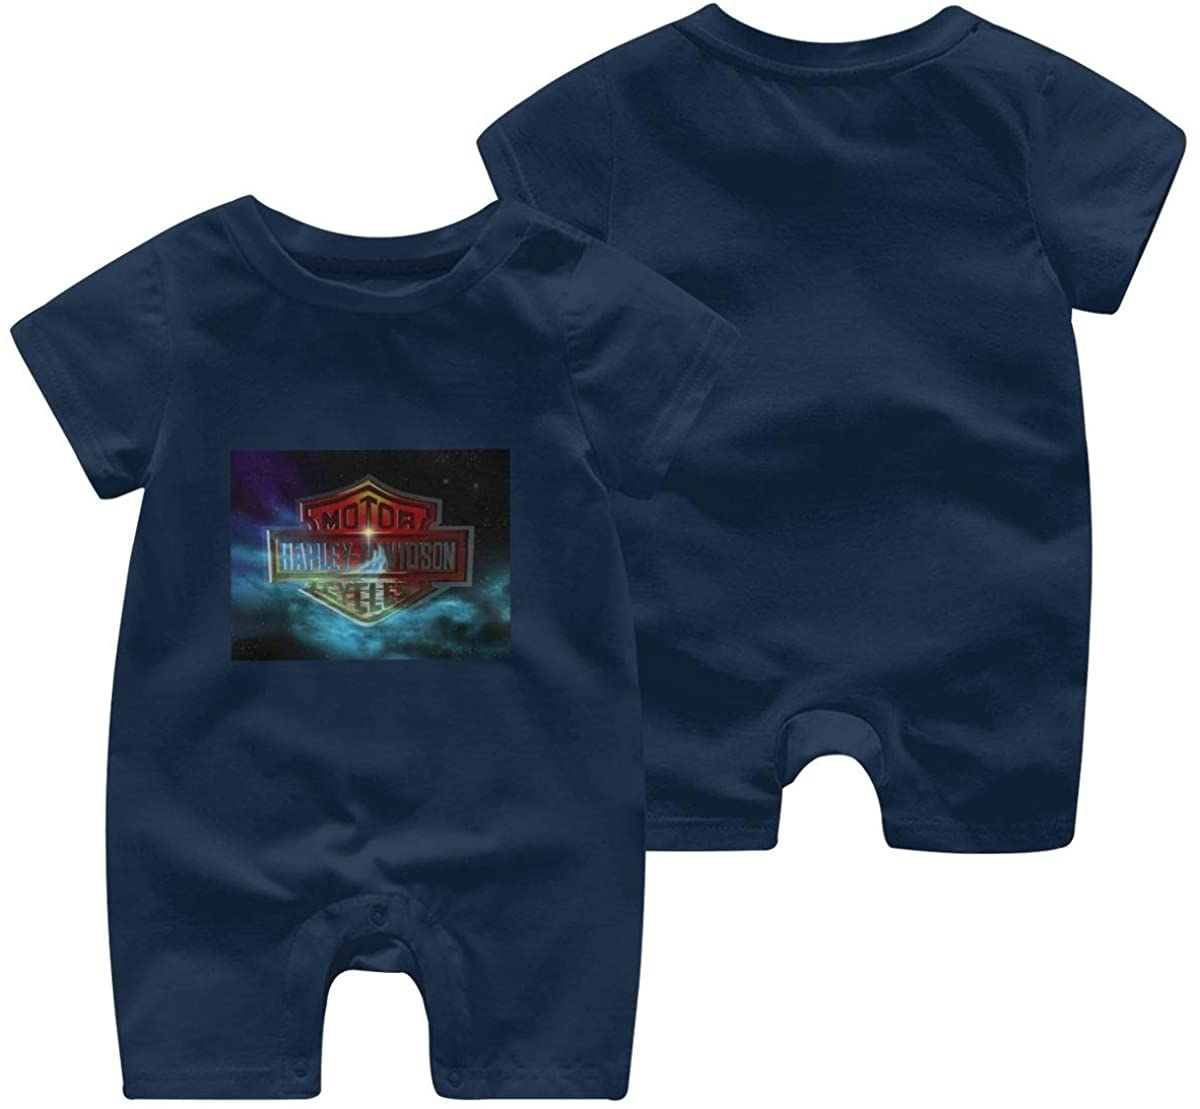 Harley Davidson One Piece Outfits Baby Solid Color Rompers with Button Kids Short Sleeve Playsuit Jumpsuits Cotton Clothing 2t Navy